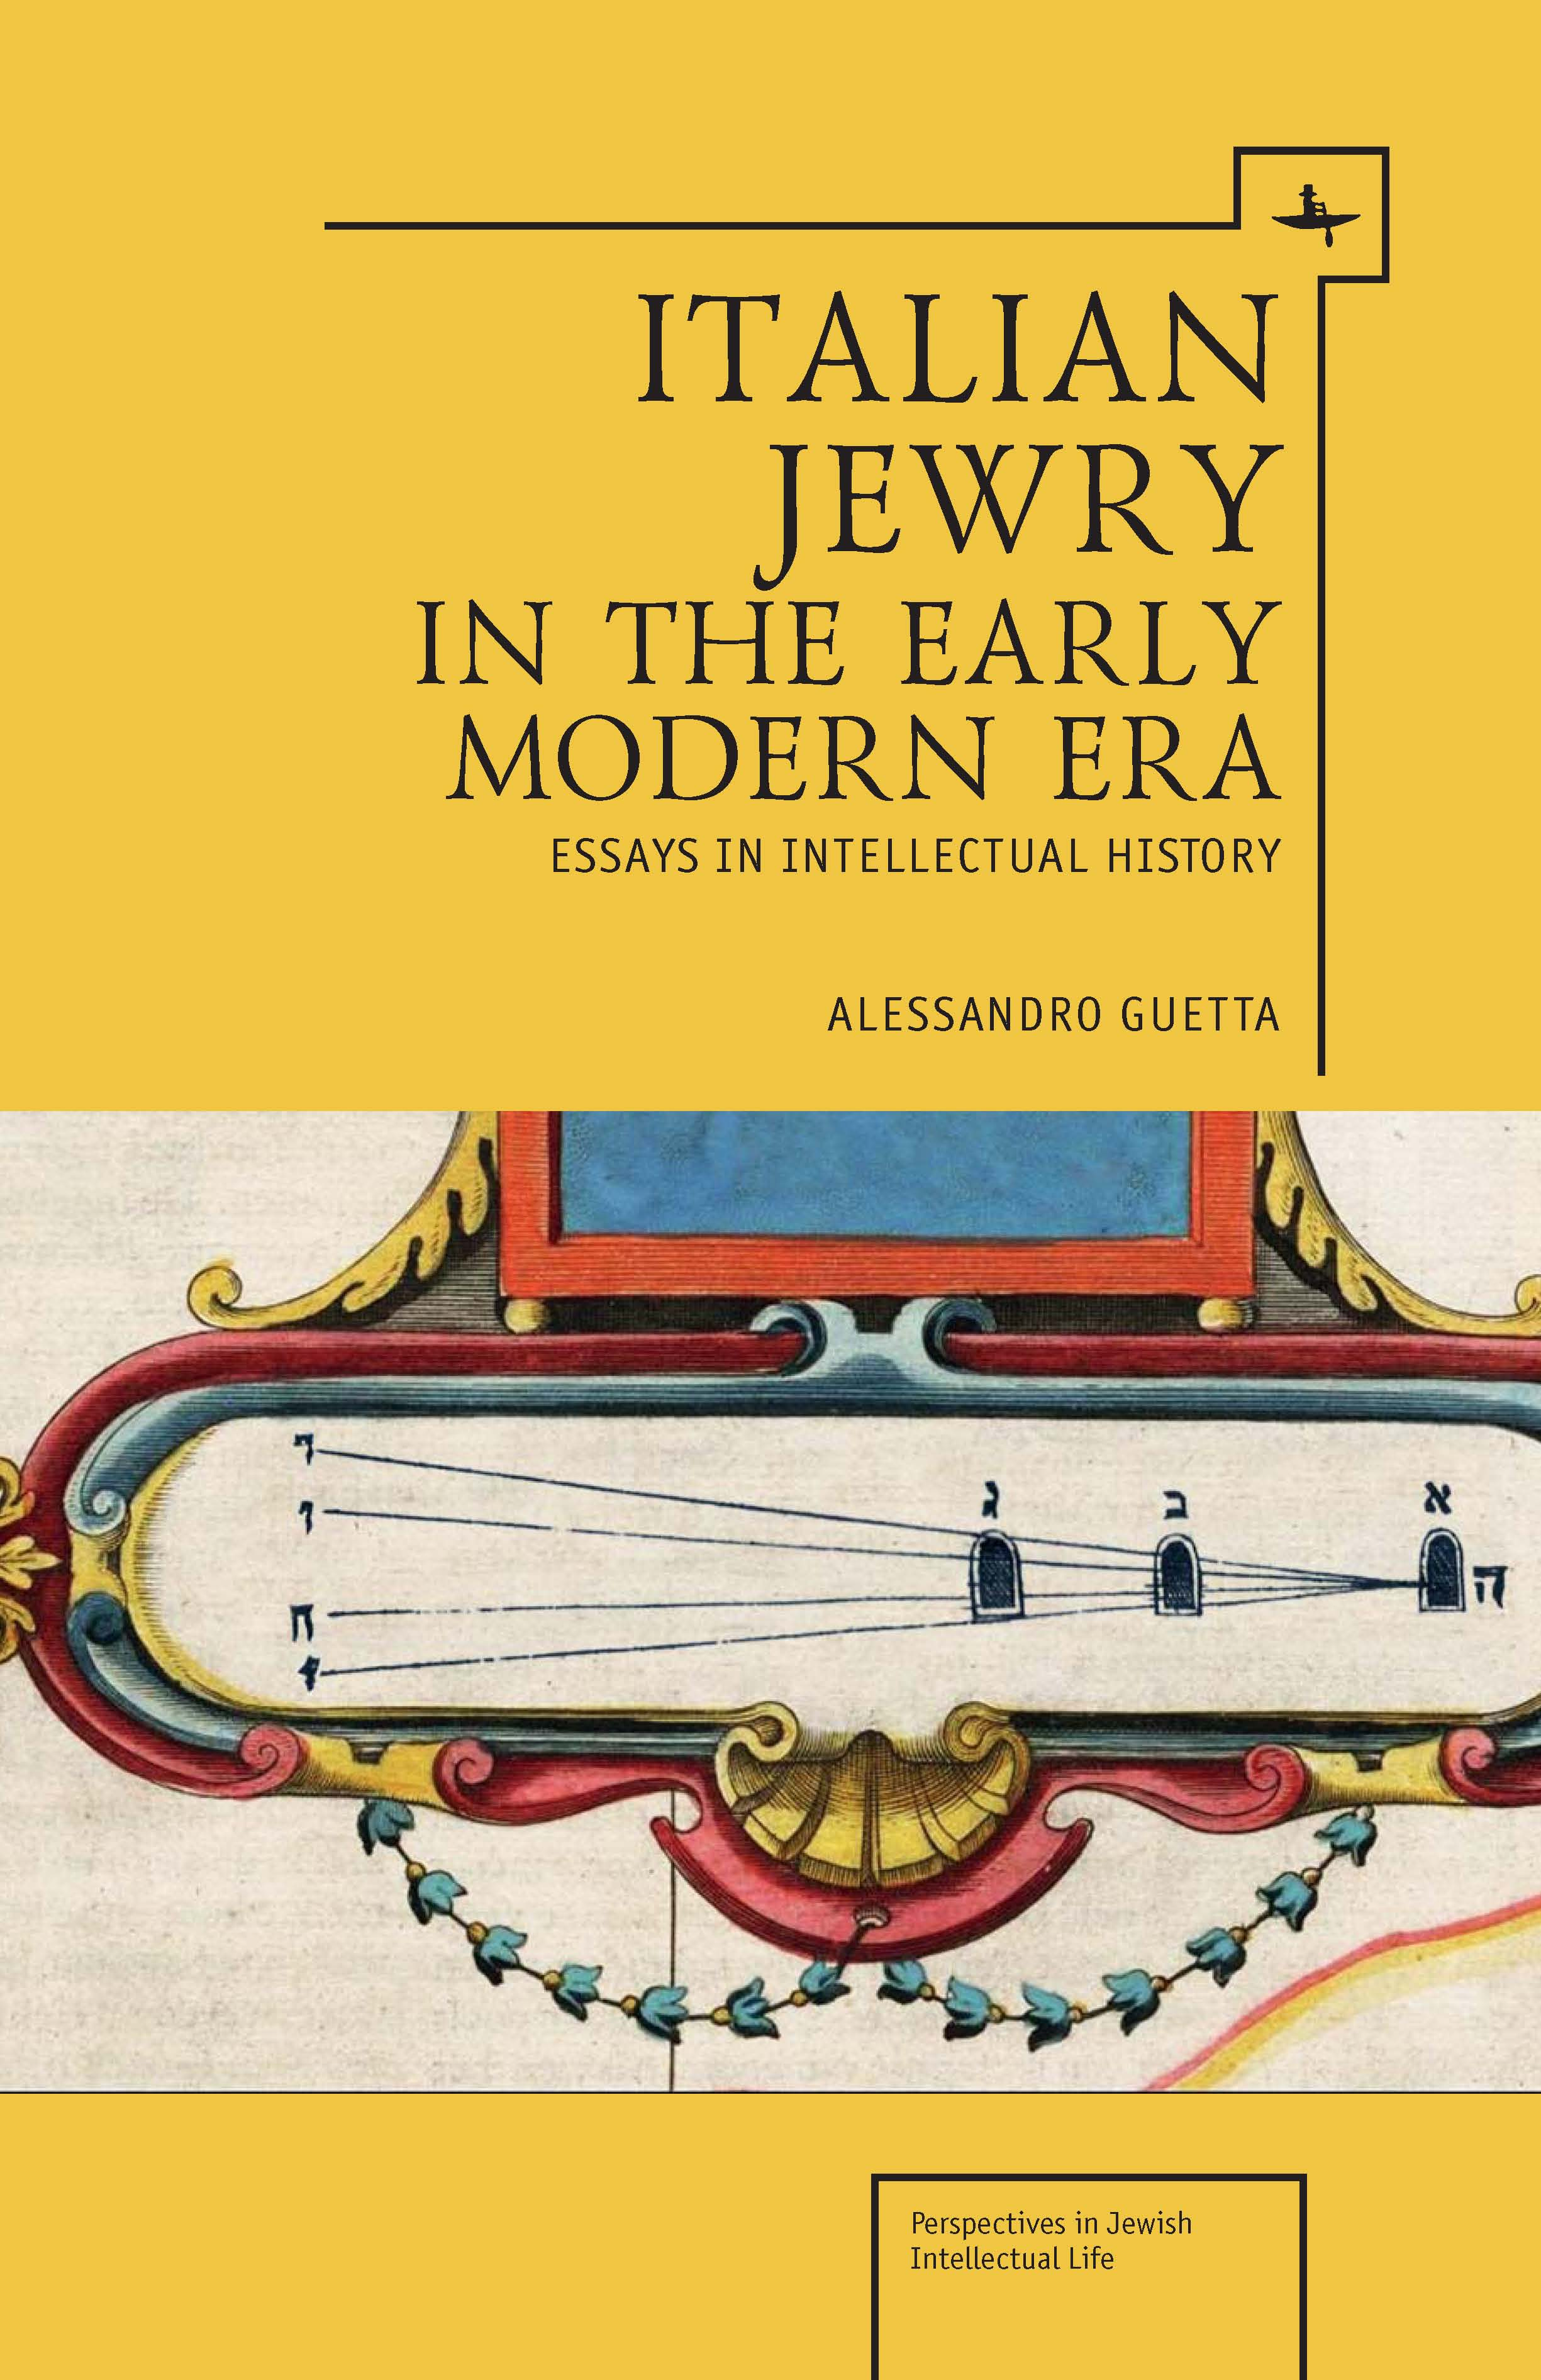 Italian Jewry in the Early Modern Era: Essays in Intellectual History  Alessandro Guetta   Read on JSTOR  |  Purchase book